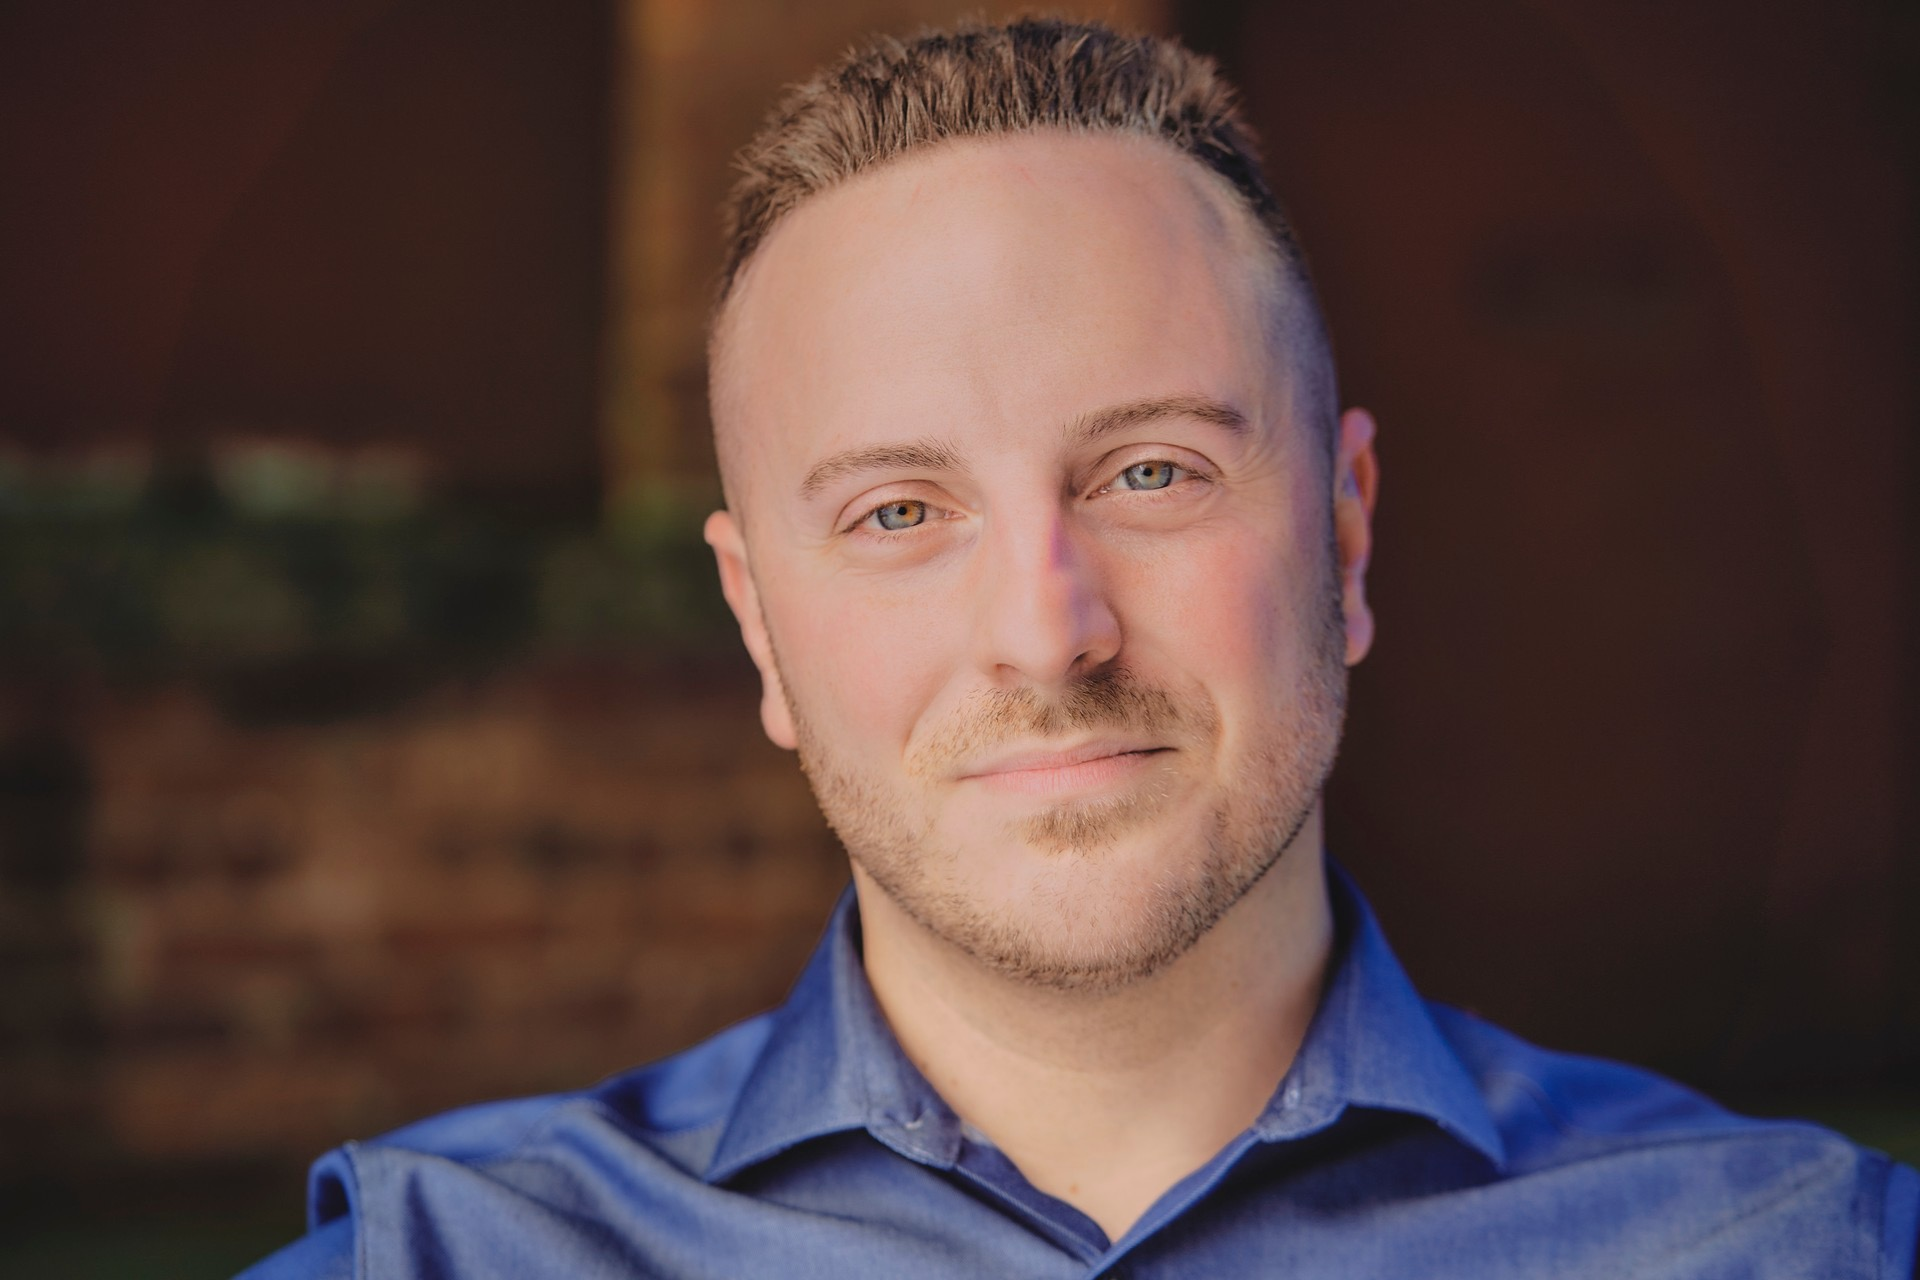 EMG's Saulpaugh Guest on Pat Perdue's Customer Experience Podcast headshot